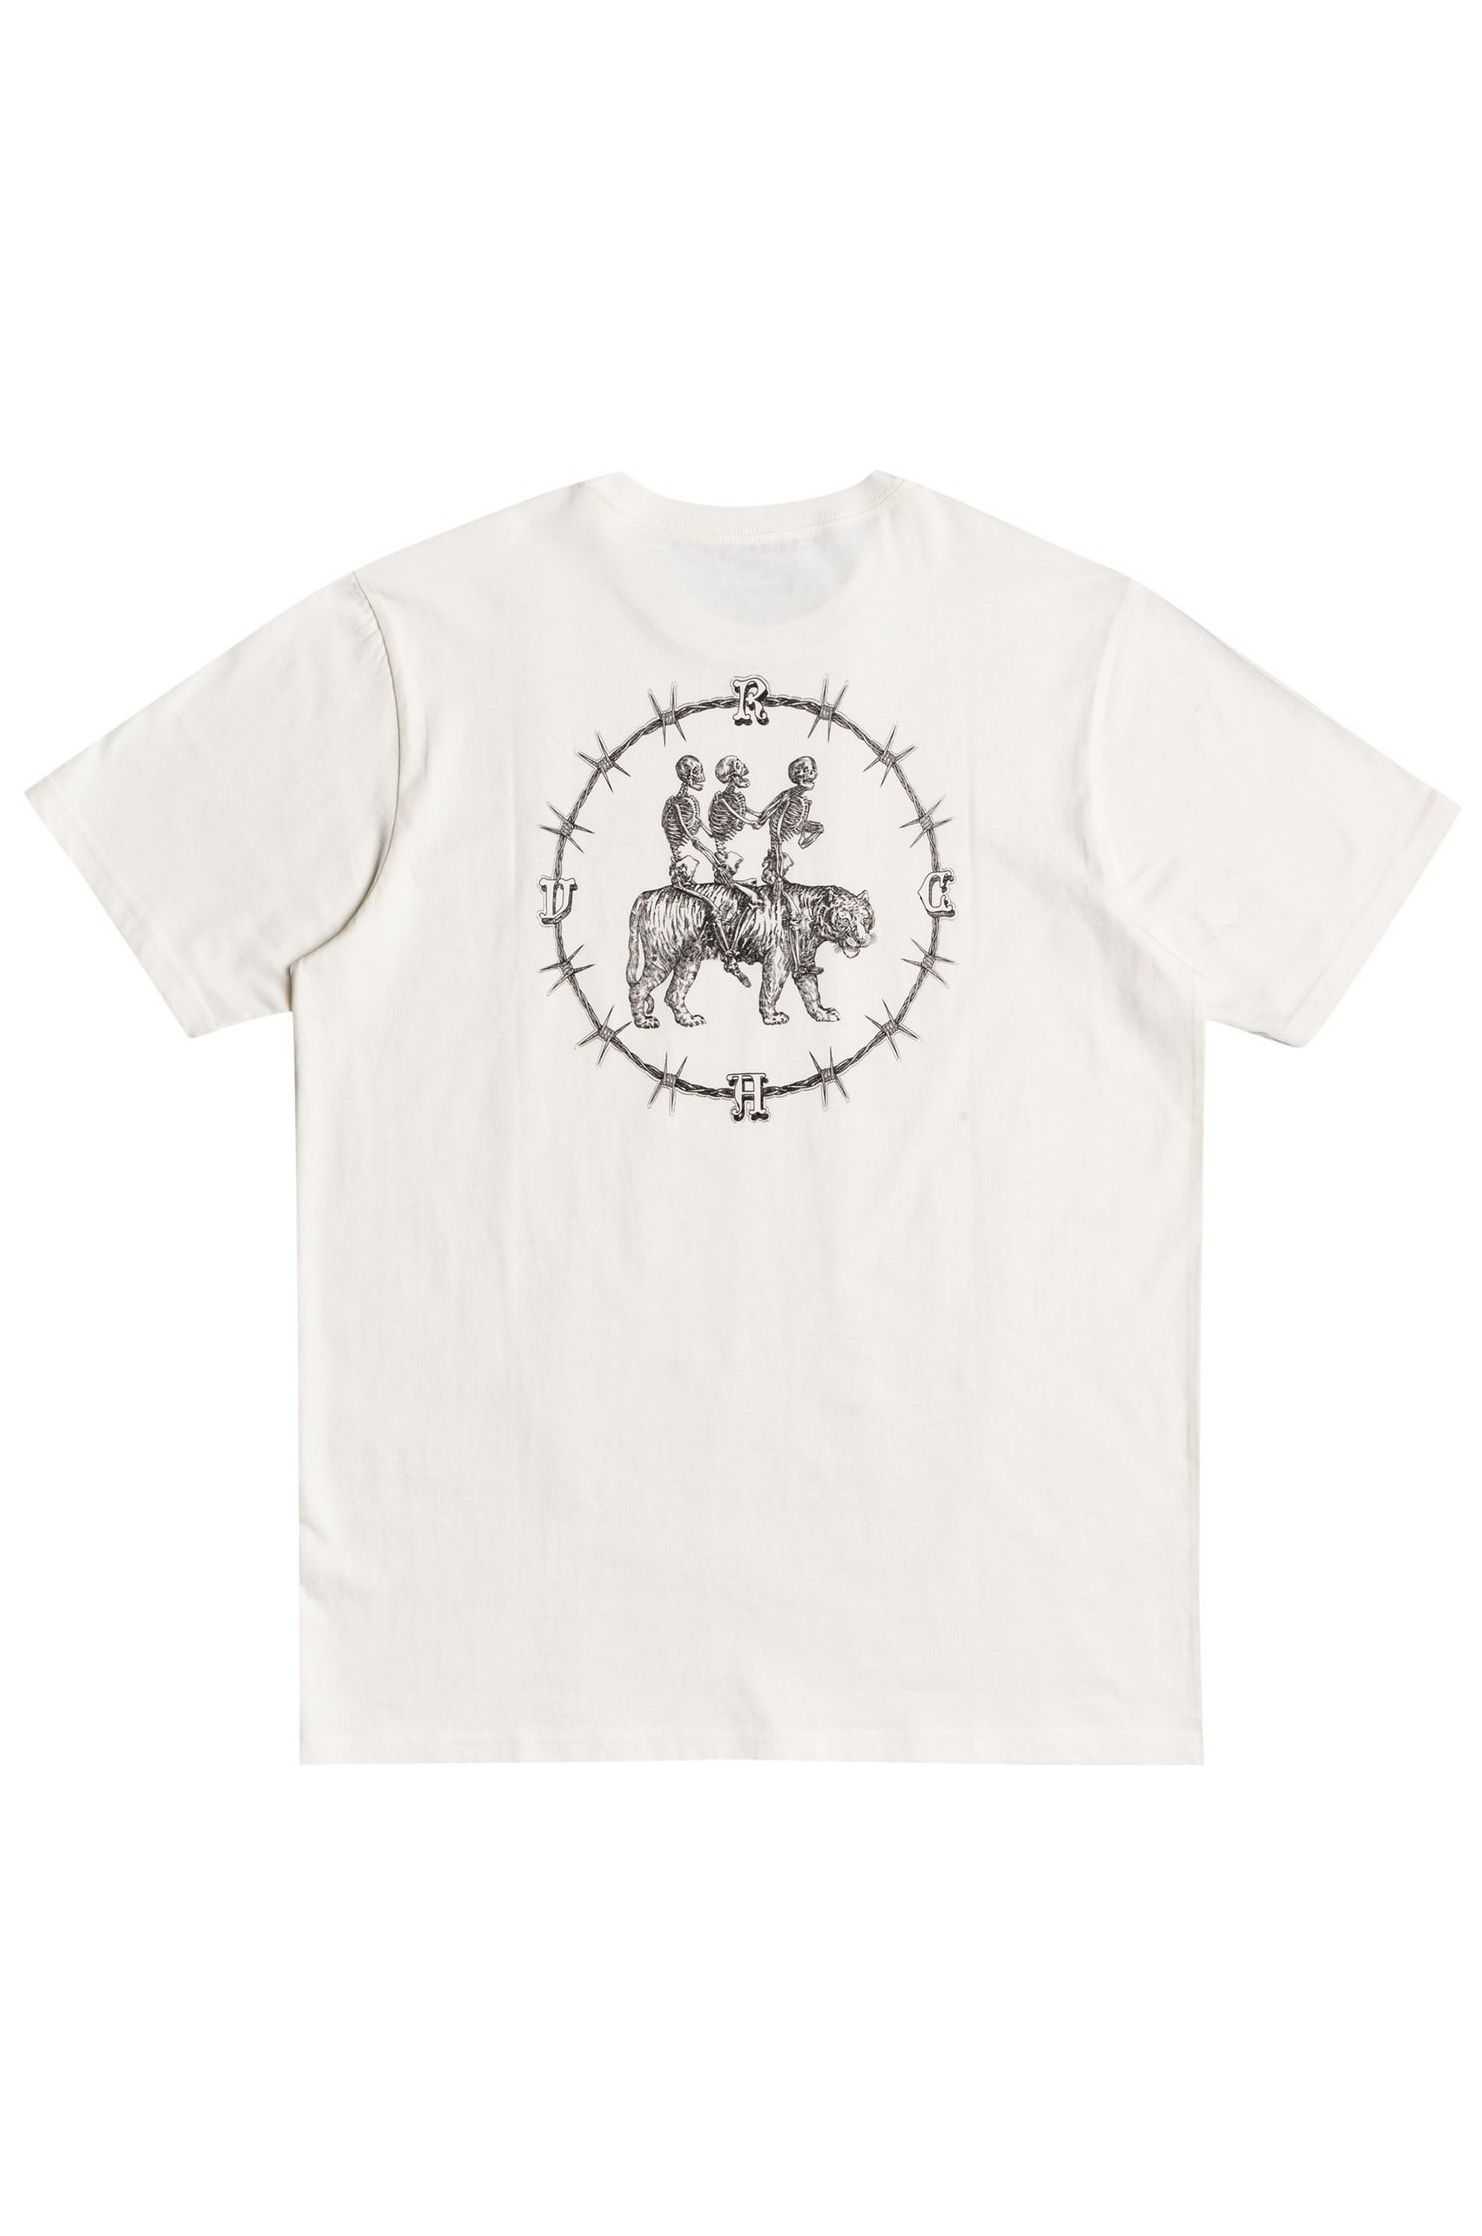 T-Shirt RVCA SKELETON WALK BENJAMIN JEAN JEAN Antique White